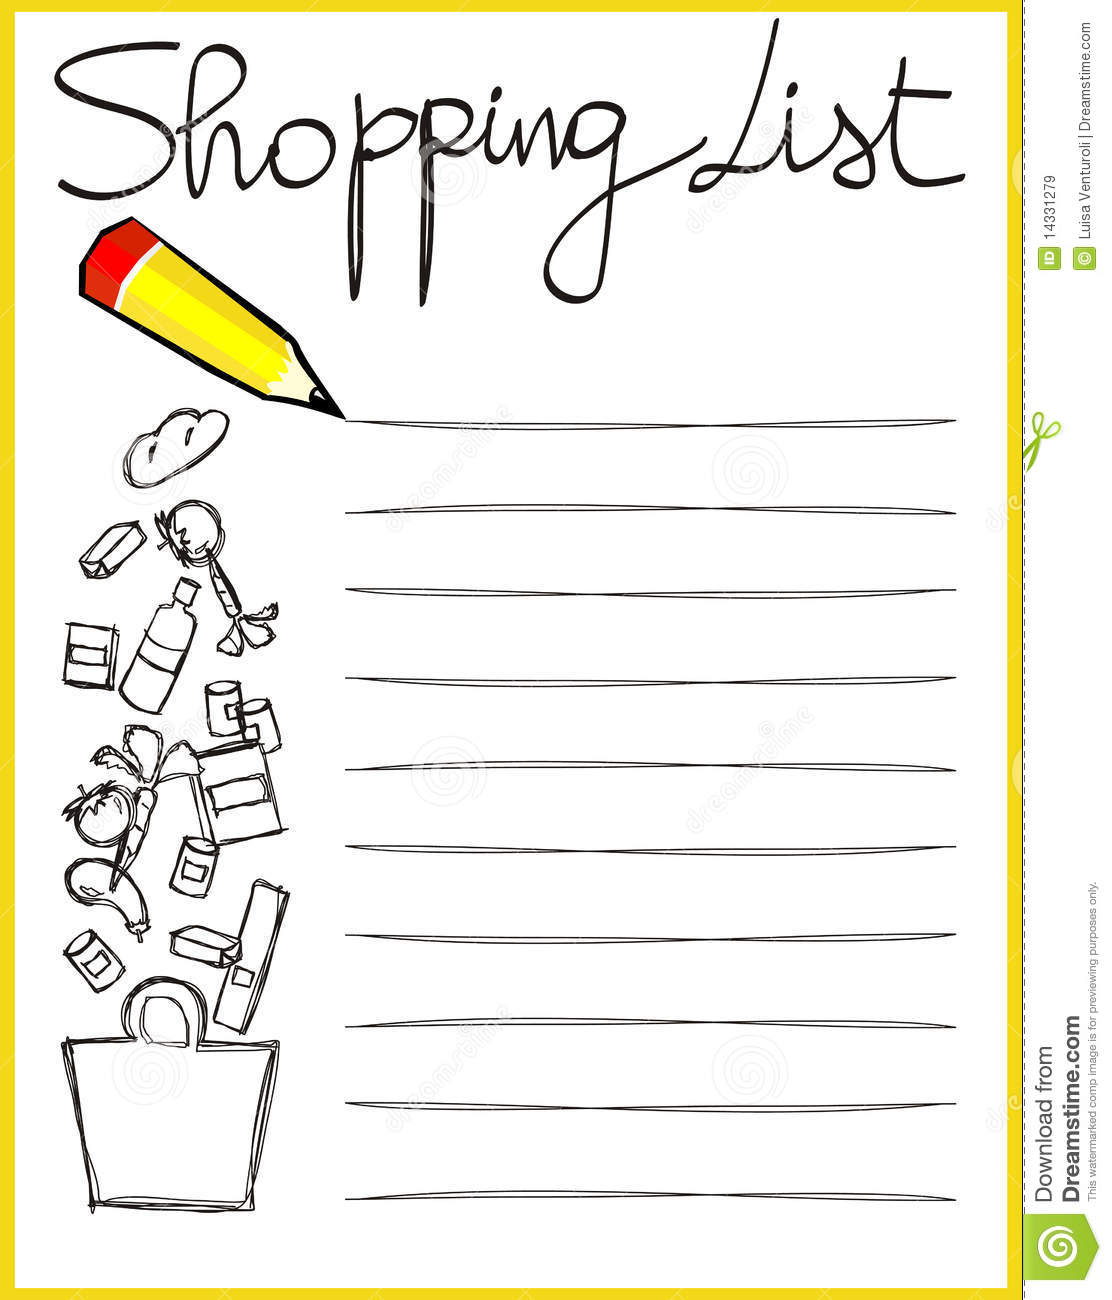 Image result for shopping list